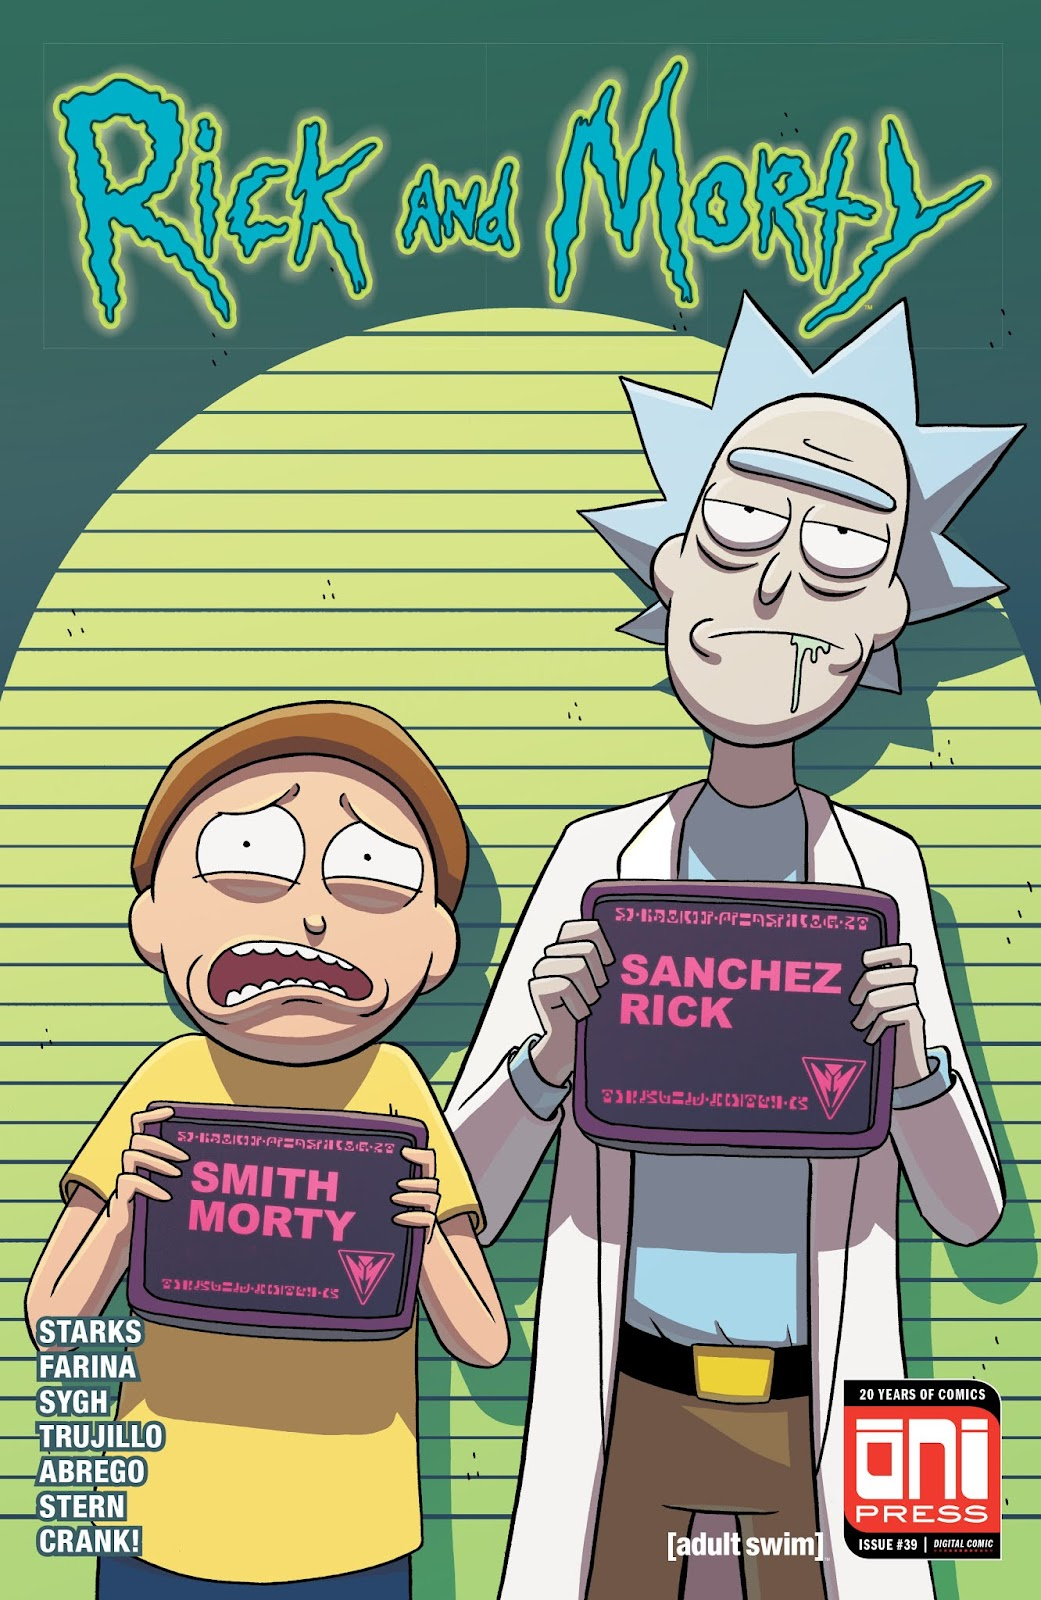 Rick and Morty issue 39 - Page 1